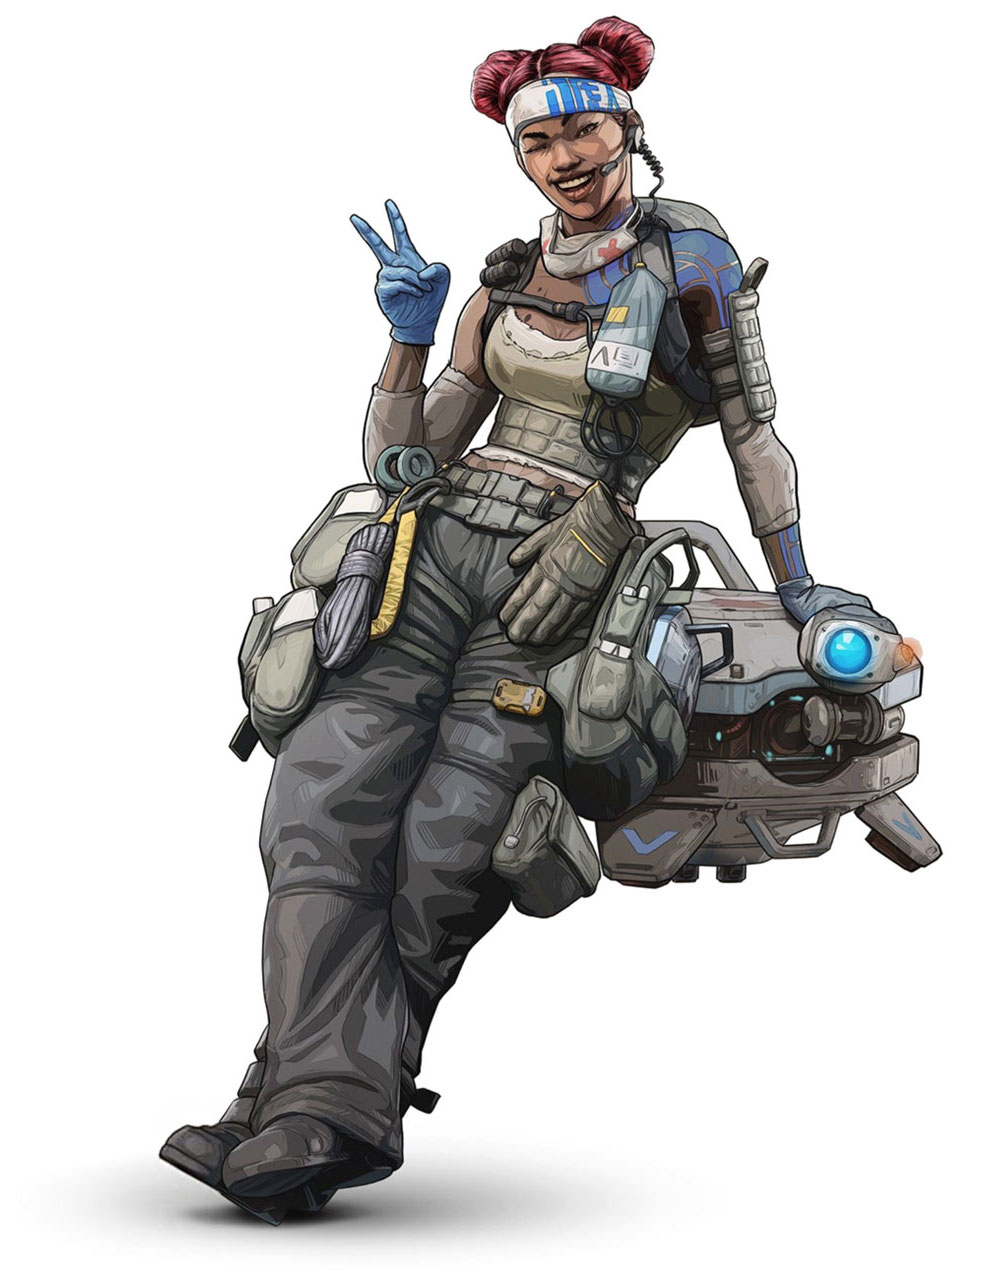 Концепт-арт Lifeline Apex Legends (7).jpg